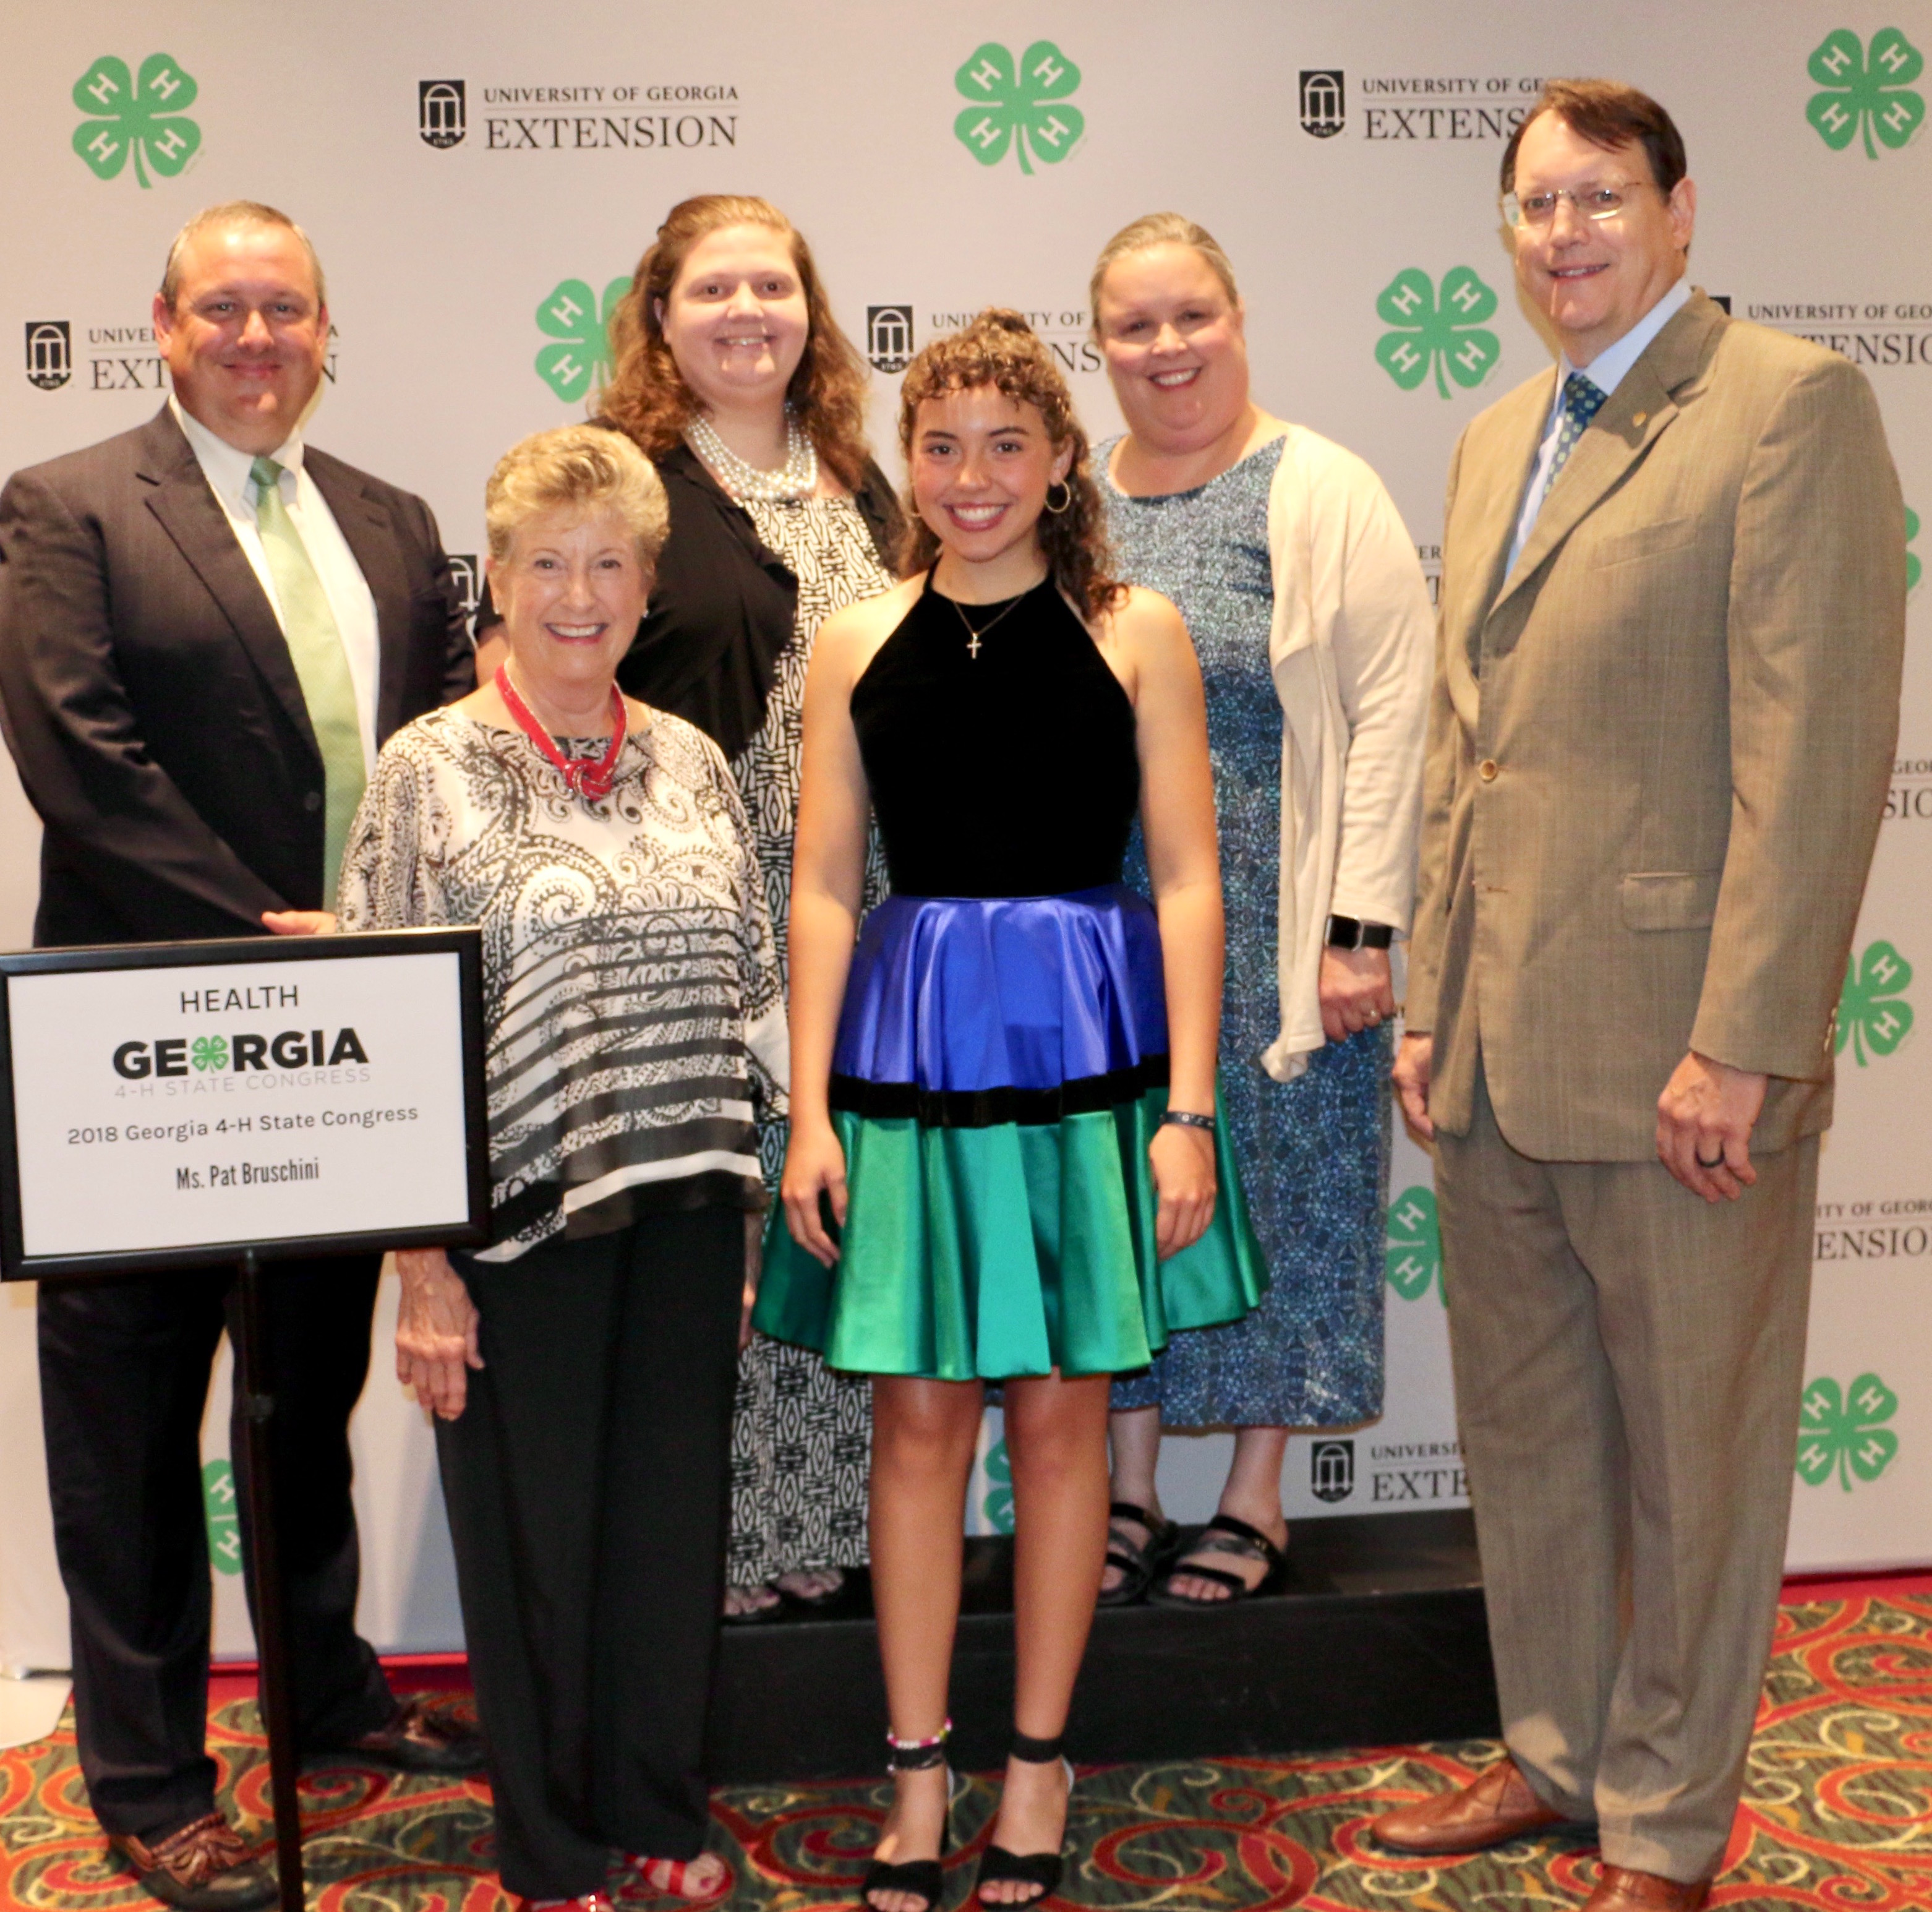 Sophia Rodriguez of Liberty County is among the 50 Georgia 4-H members who were awarded first place in their category during State 4-H Congress held July 24-27. Rodriguez competed in the health category.